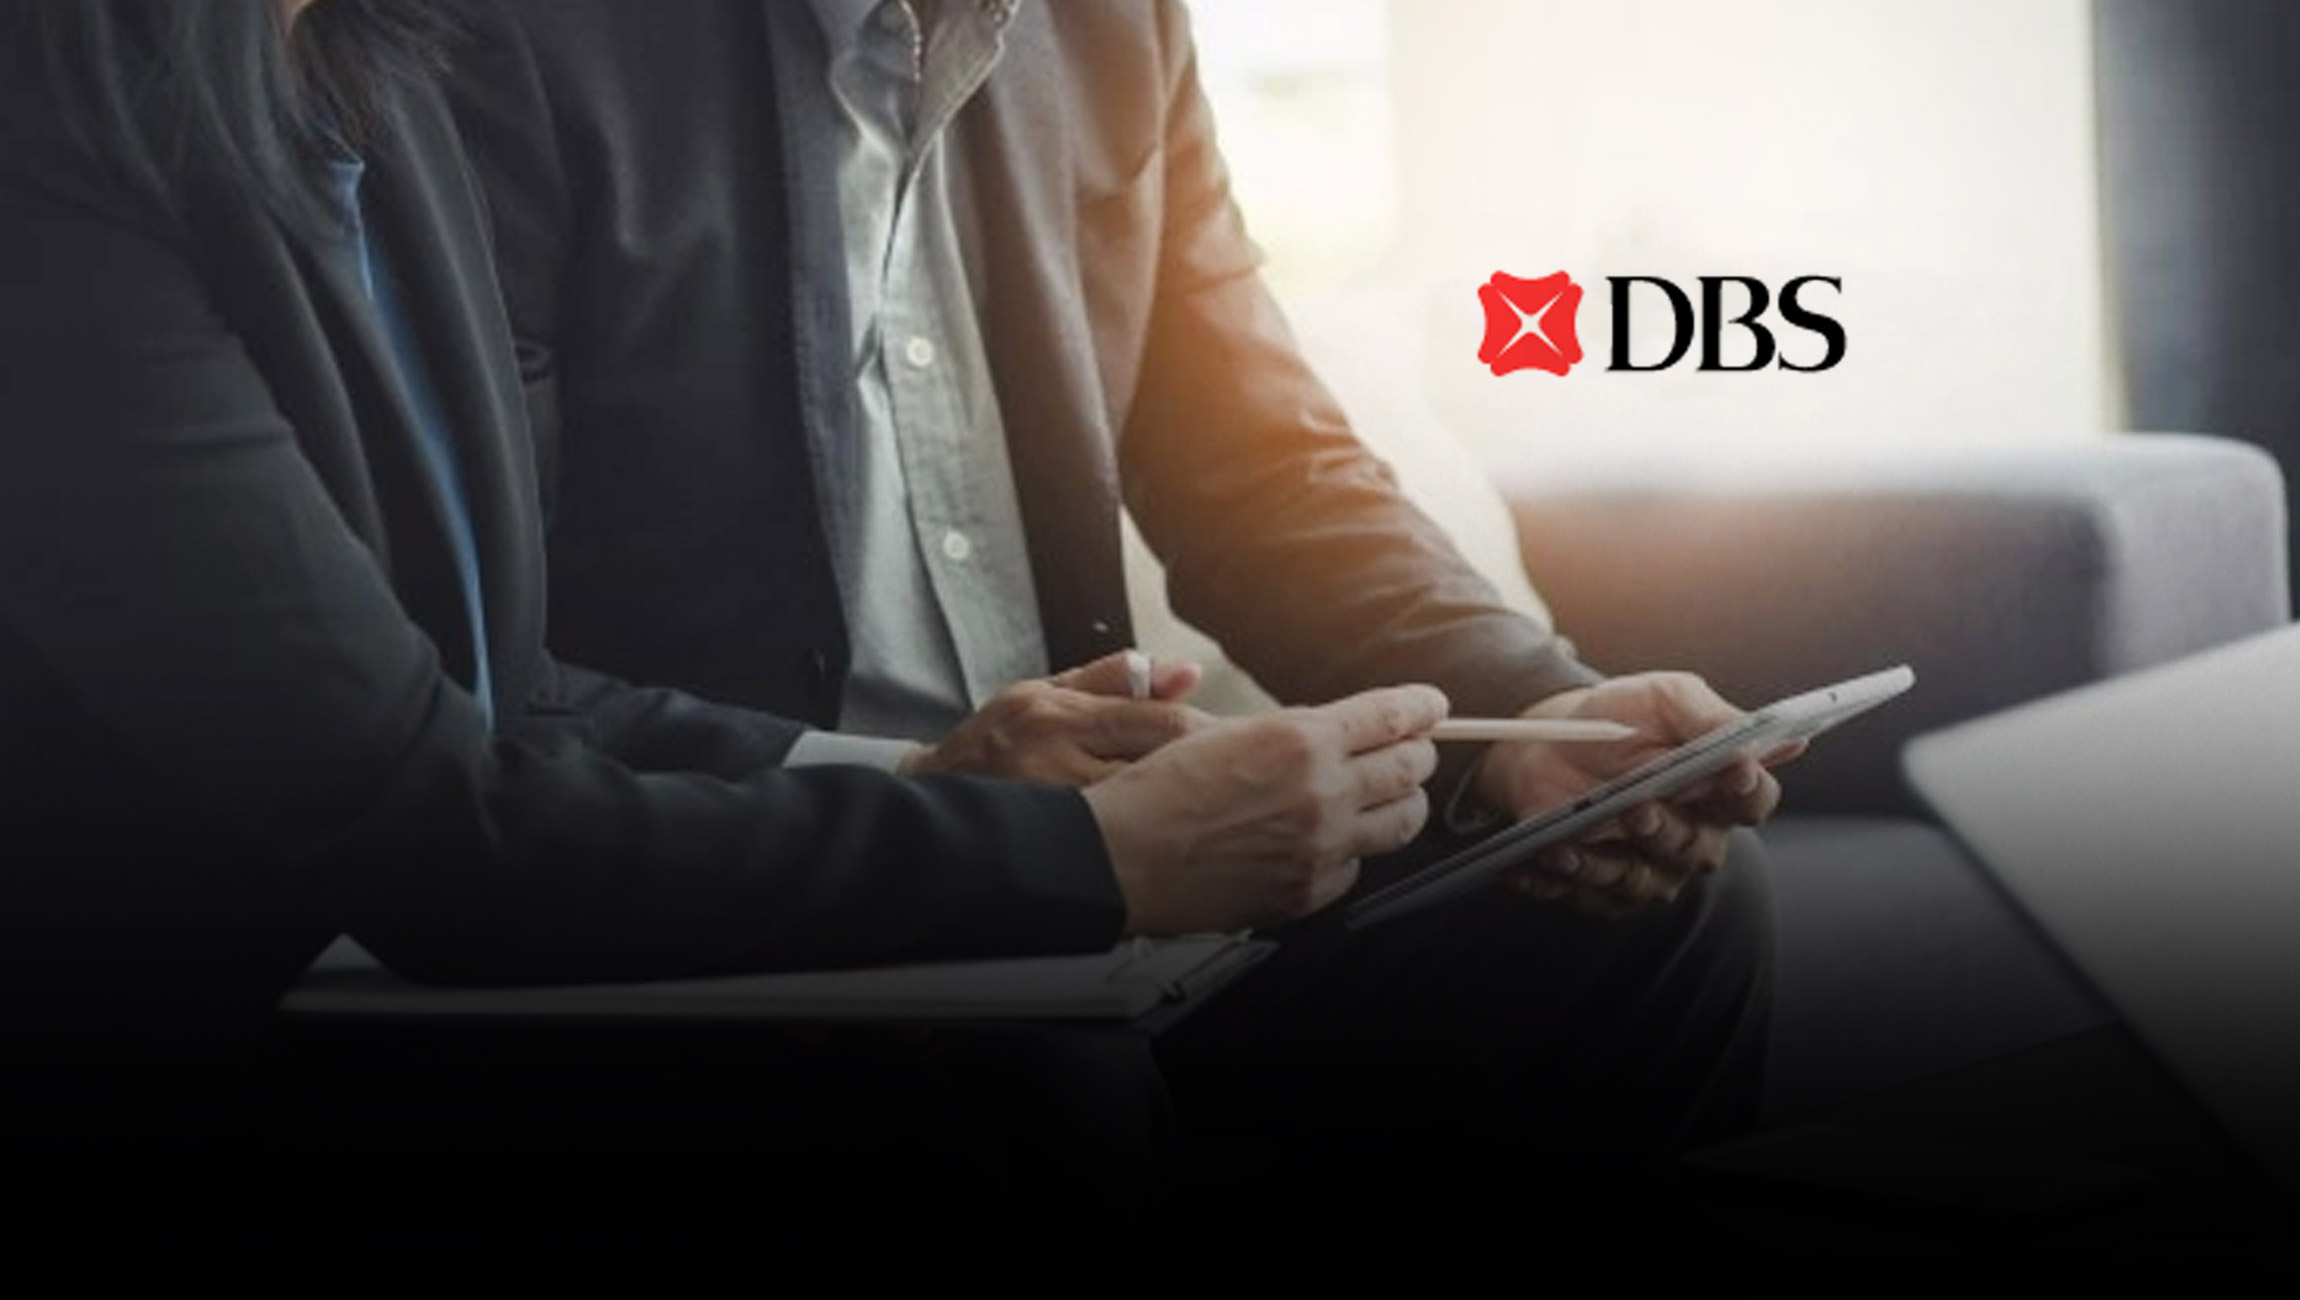 DBS Is First Bank to Partner JD Logistics on Digital Platform to Finance SMEs in Cross- Border E-Commerce Import Business